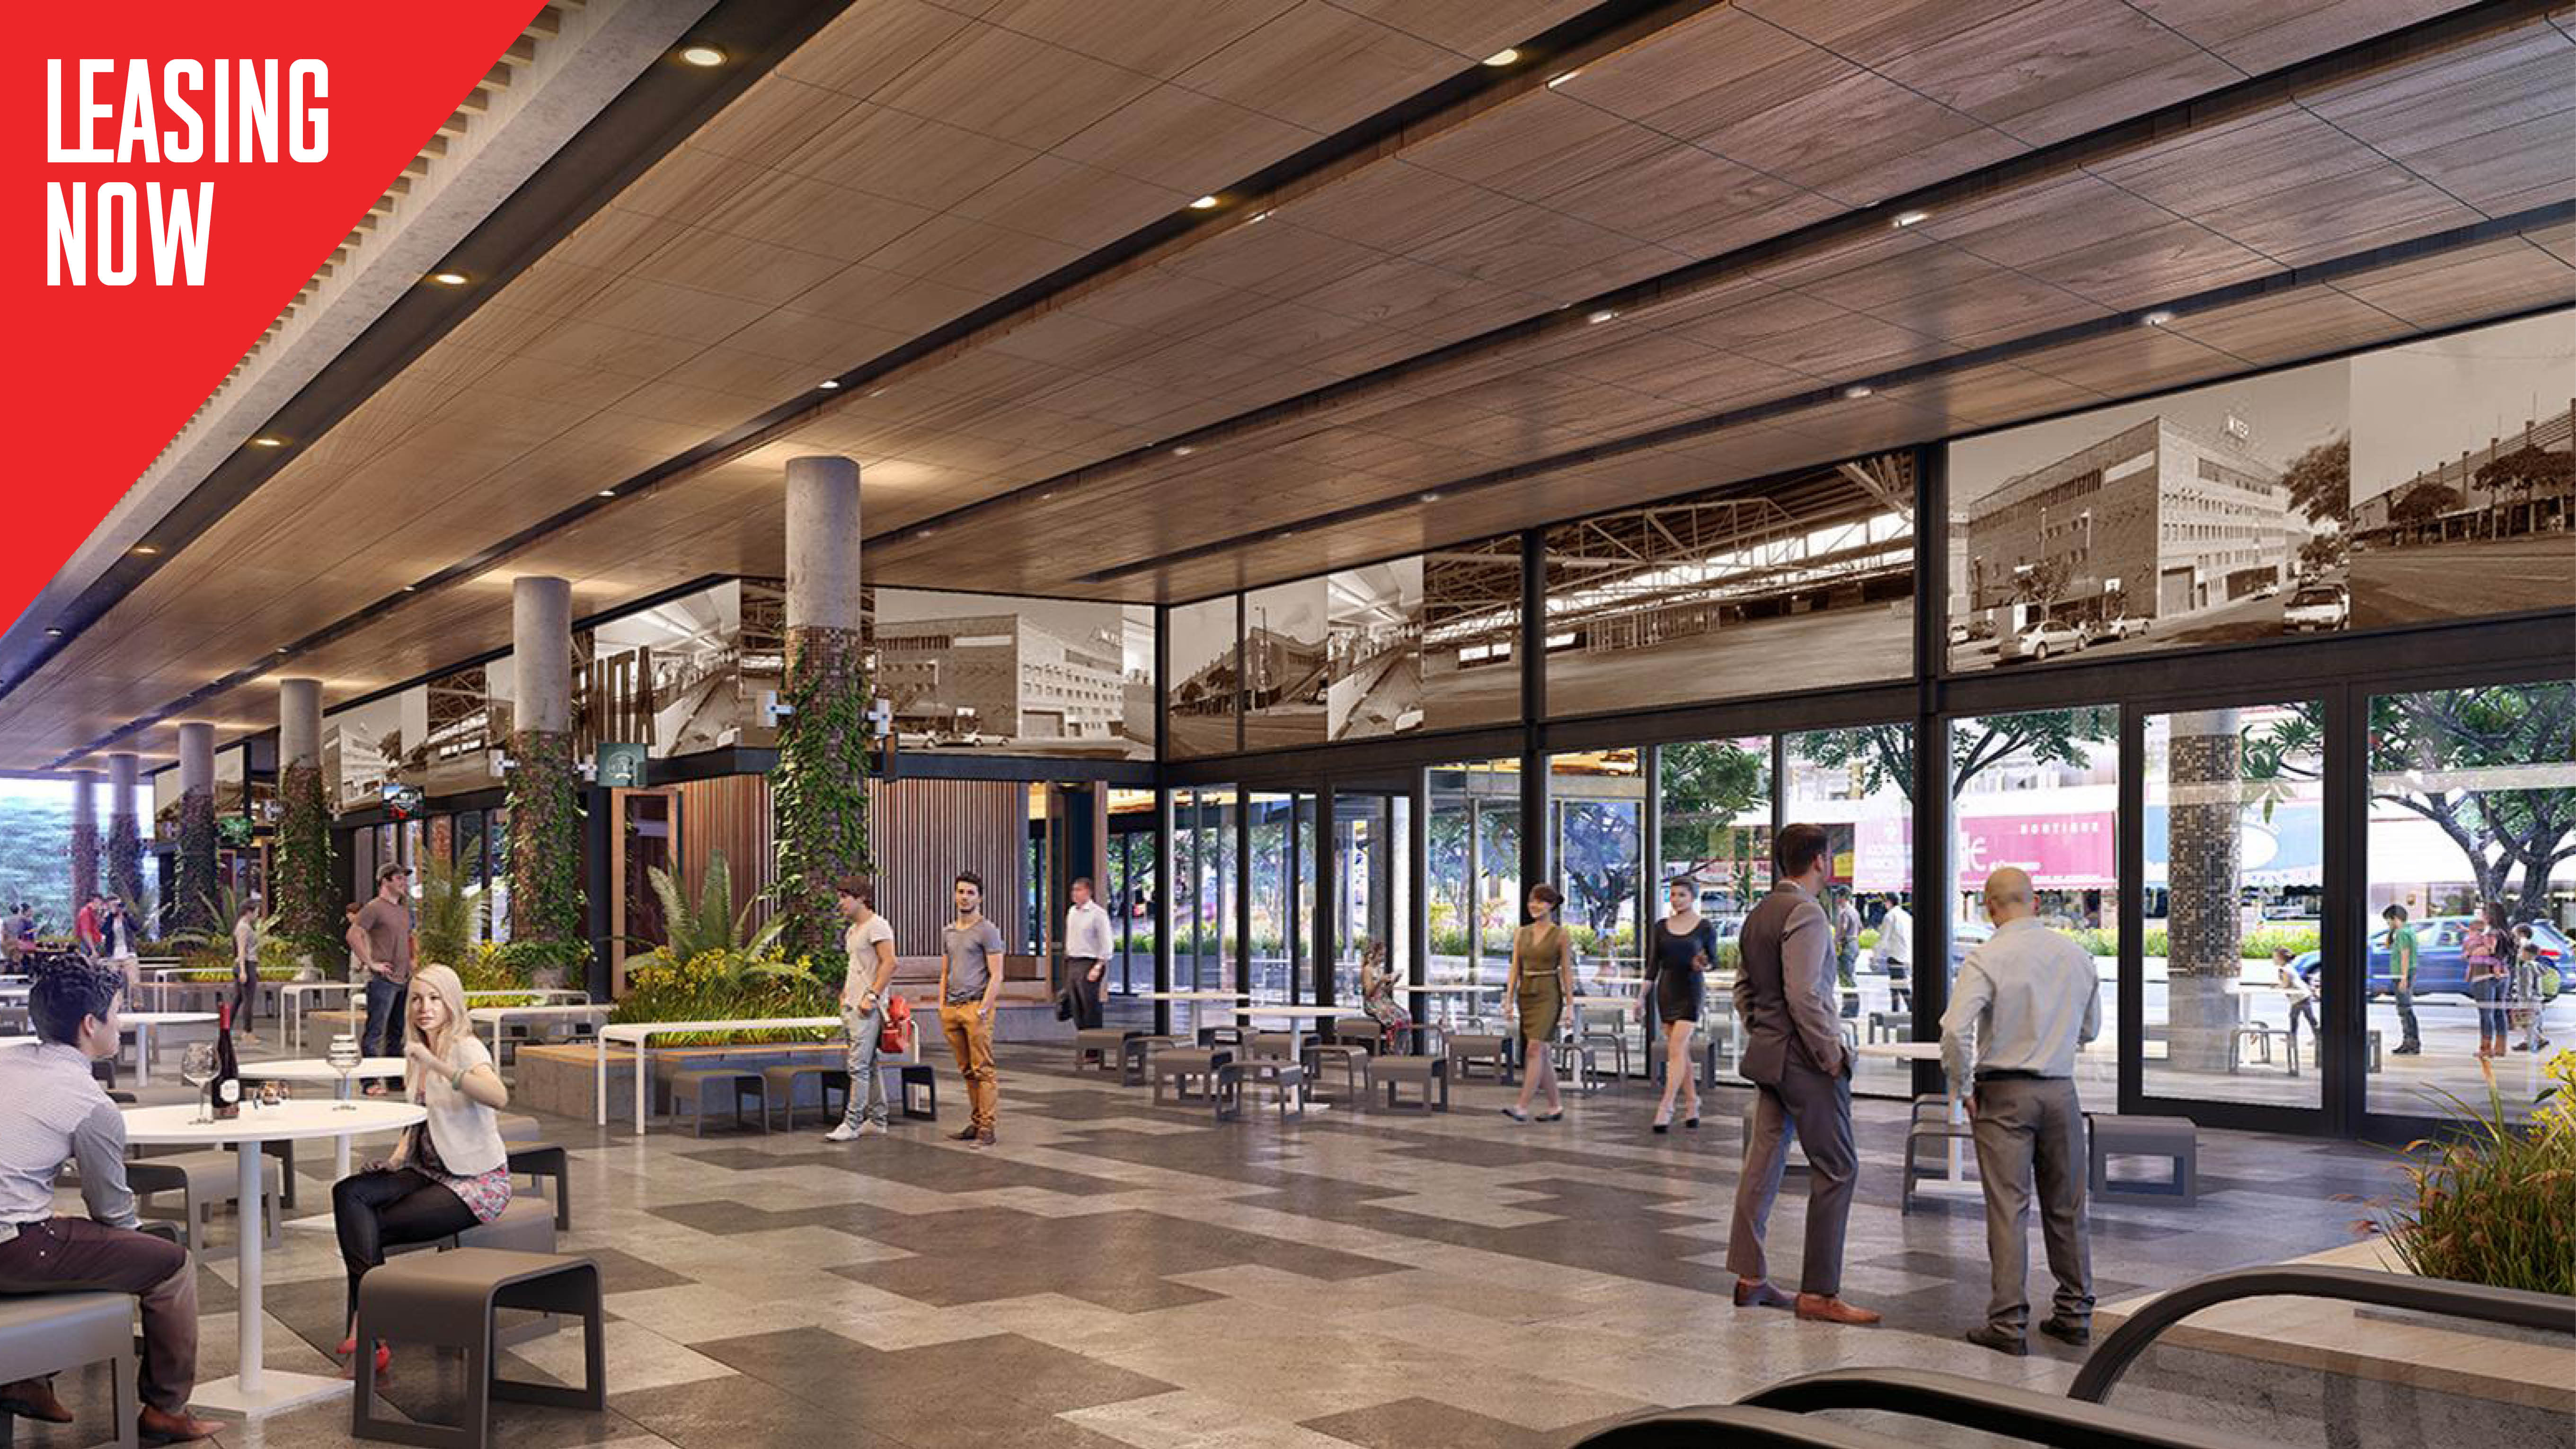 Leasing Now Coorpoaroo Square